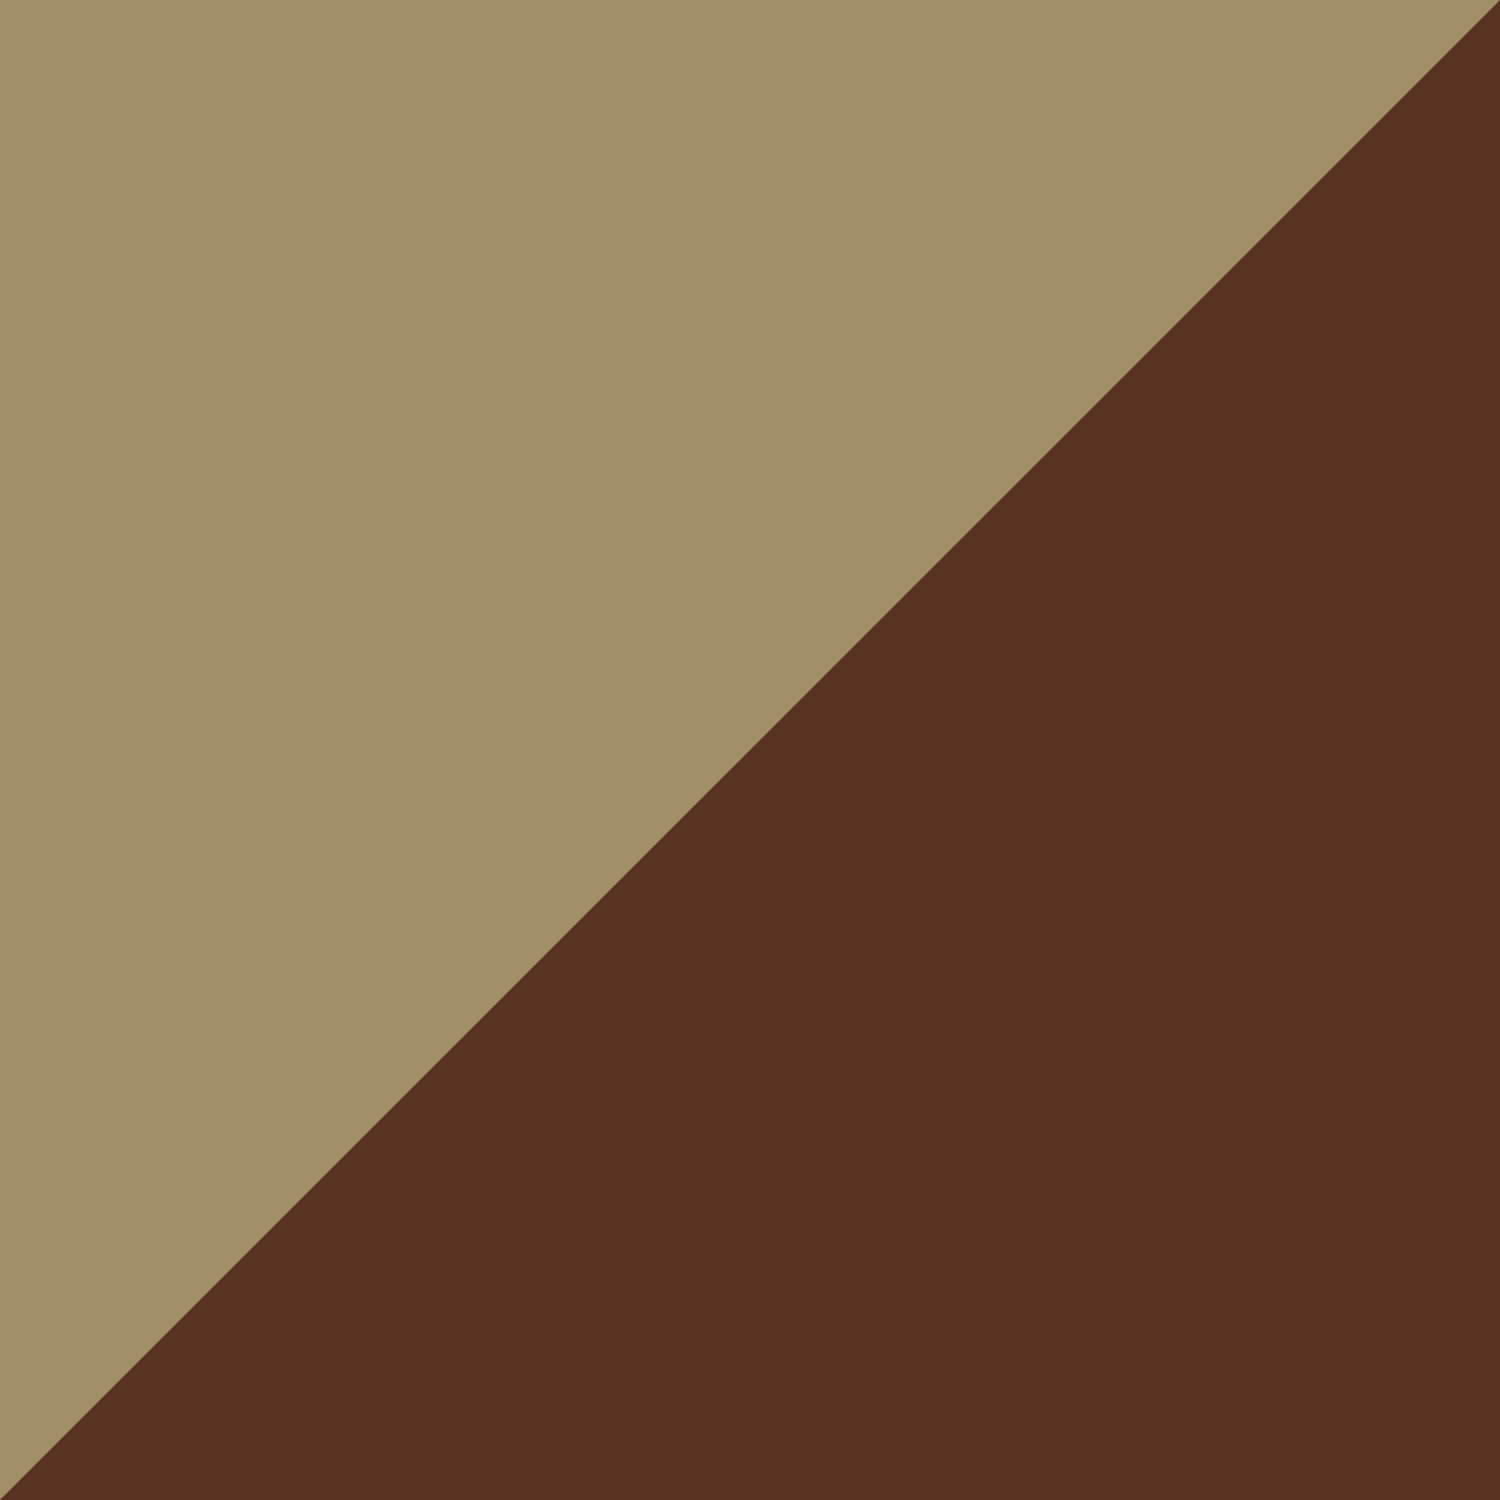 Weatherwood/Chestnut Brown